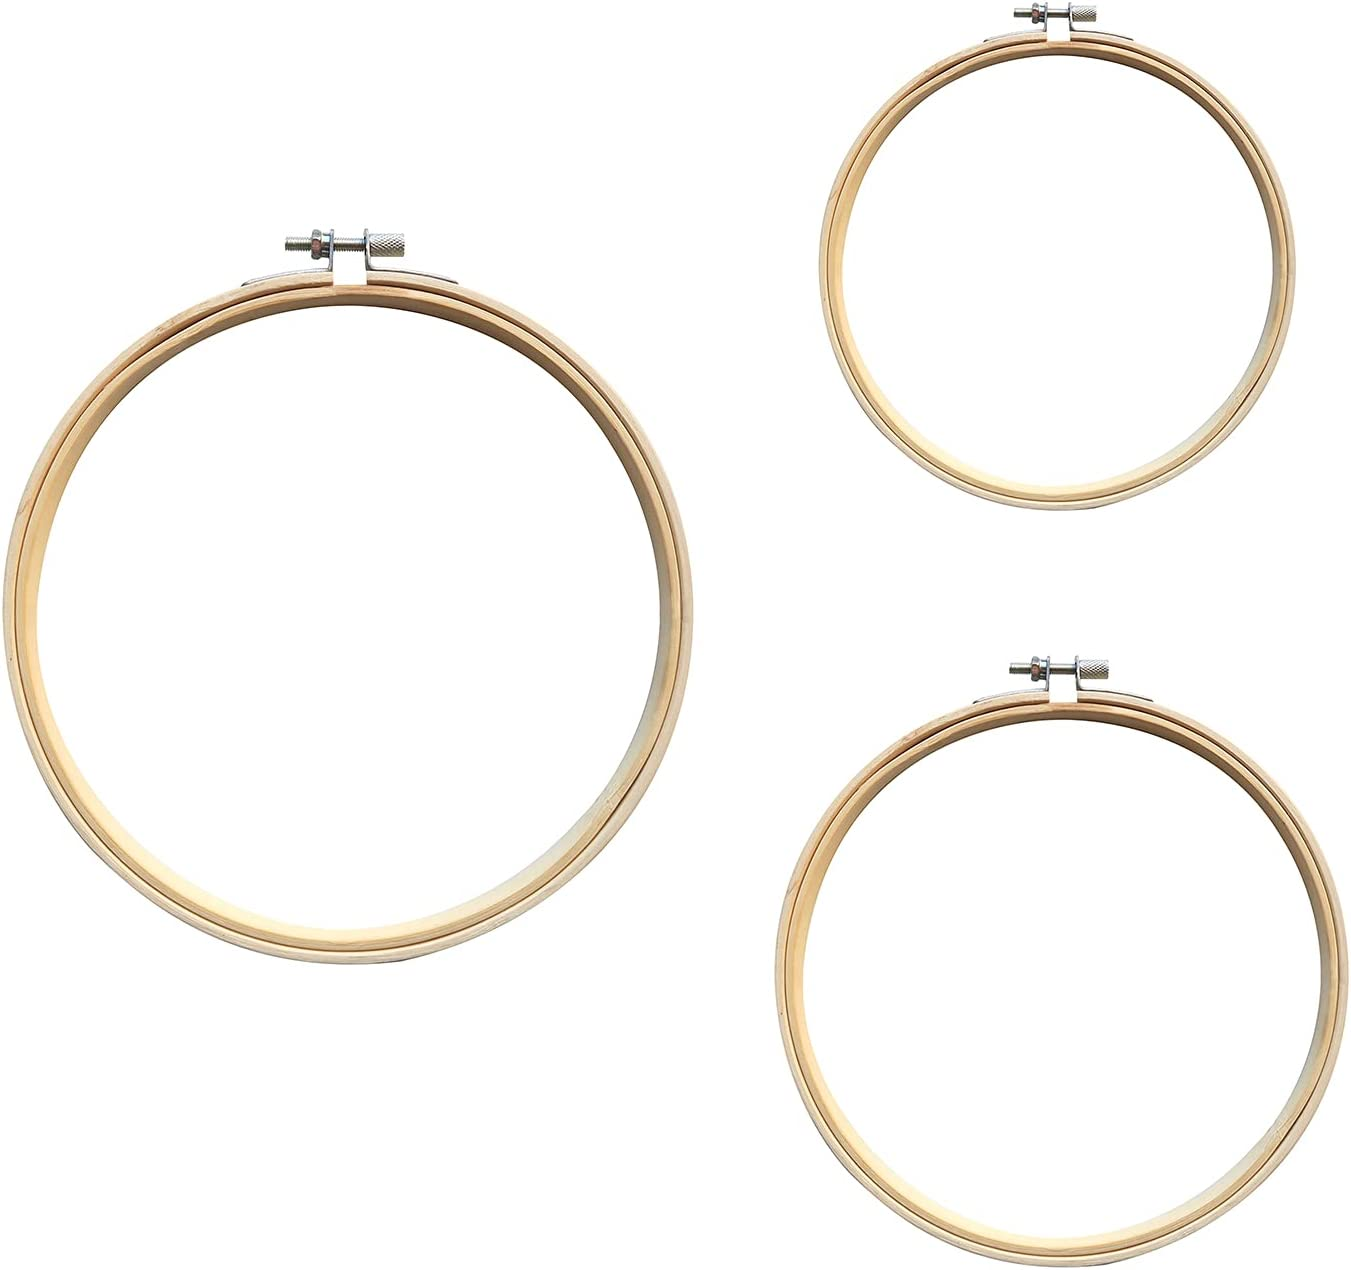 Oakland Mall 3 Pieces Sizes Embroidery Hoops 5 inch to 7 Arlington Mall Circle Bamboo